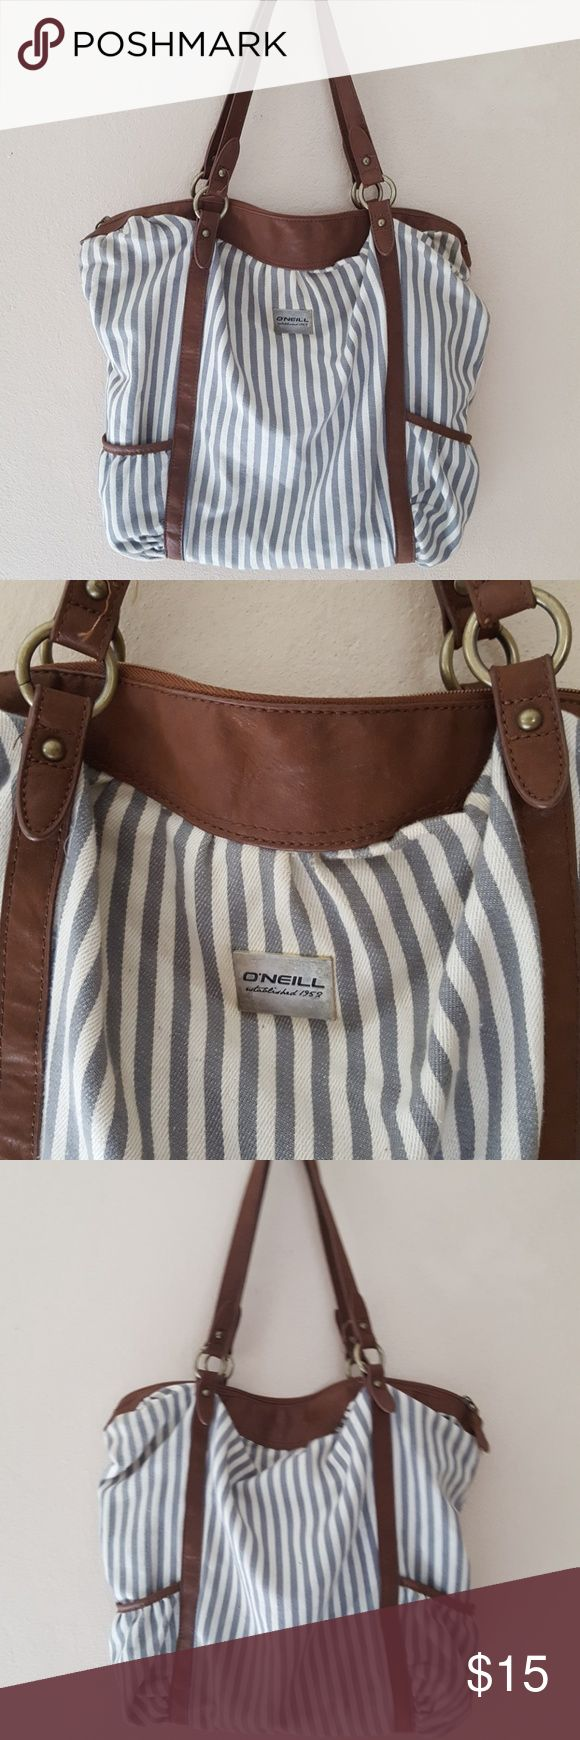 "Oneill Striped Fabric w/Contrast Trim Handbag Fun cotton striped handbag by Oneill. Measures 18"" long, and 15"" tall (excluding strap drop). The strap drop is 10"". Condition: pre owned, wear and tear such as fabric piling. O'Neill Bags Shoulder Bags"